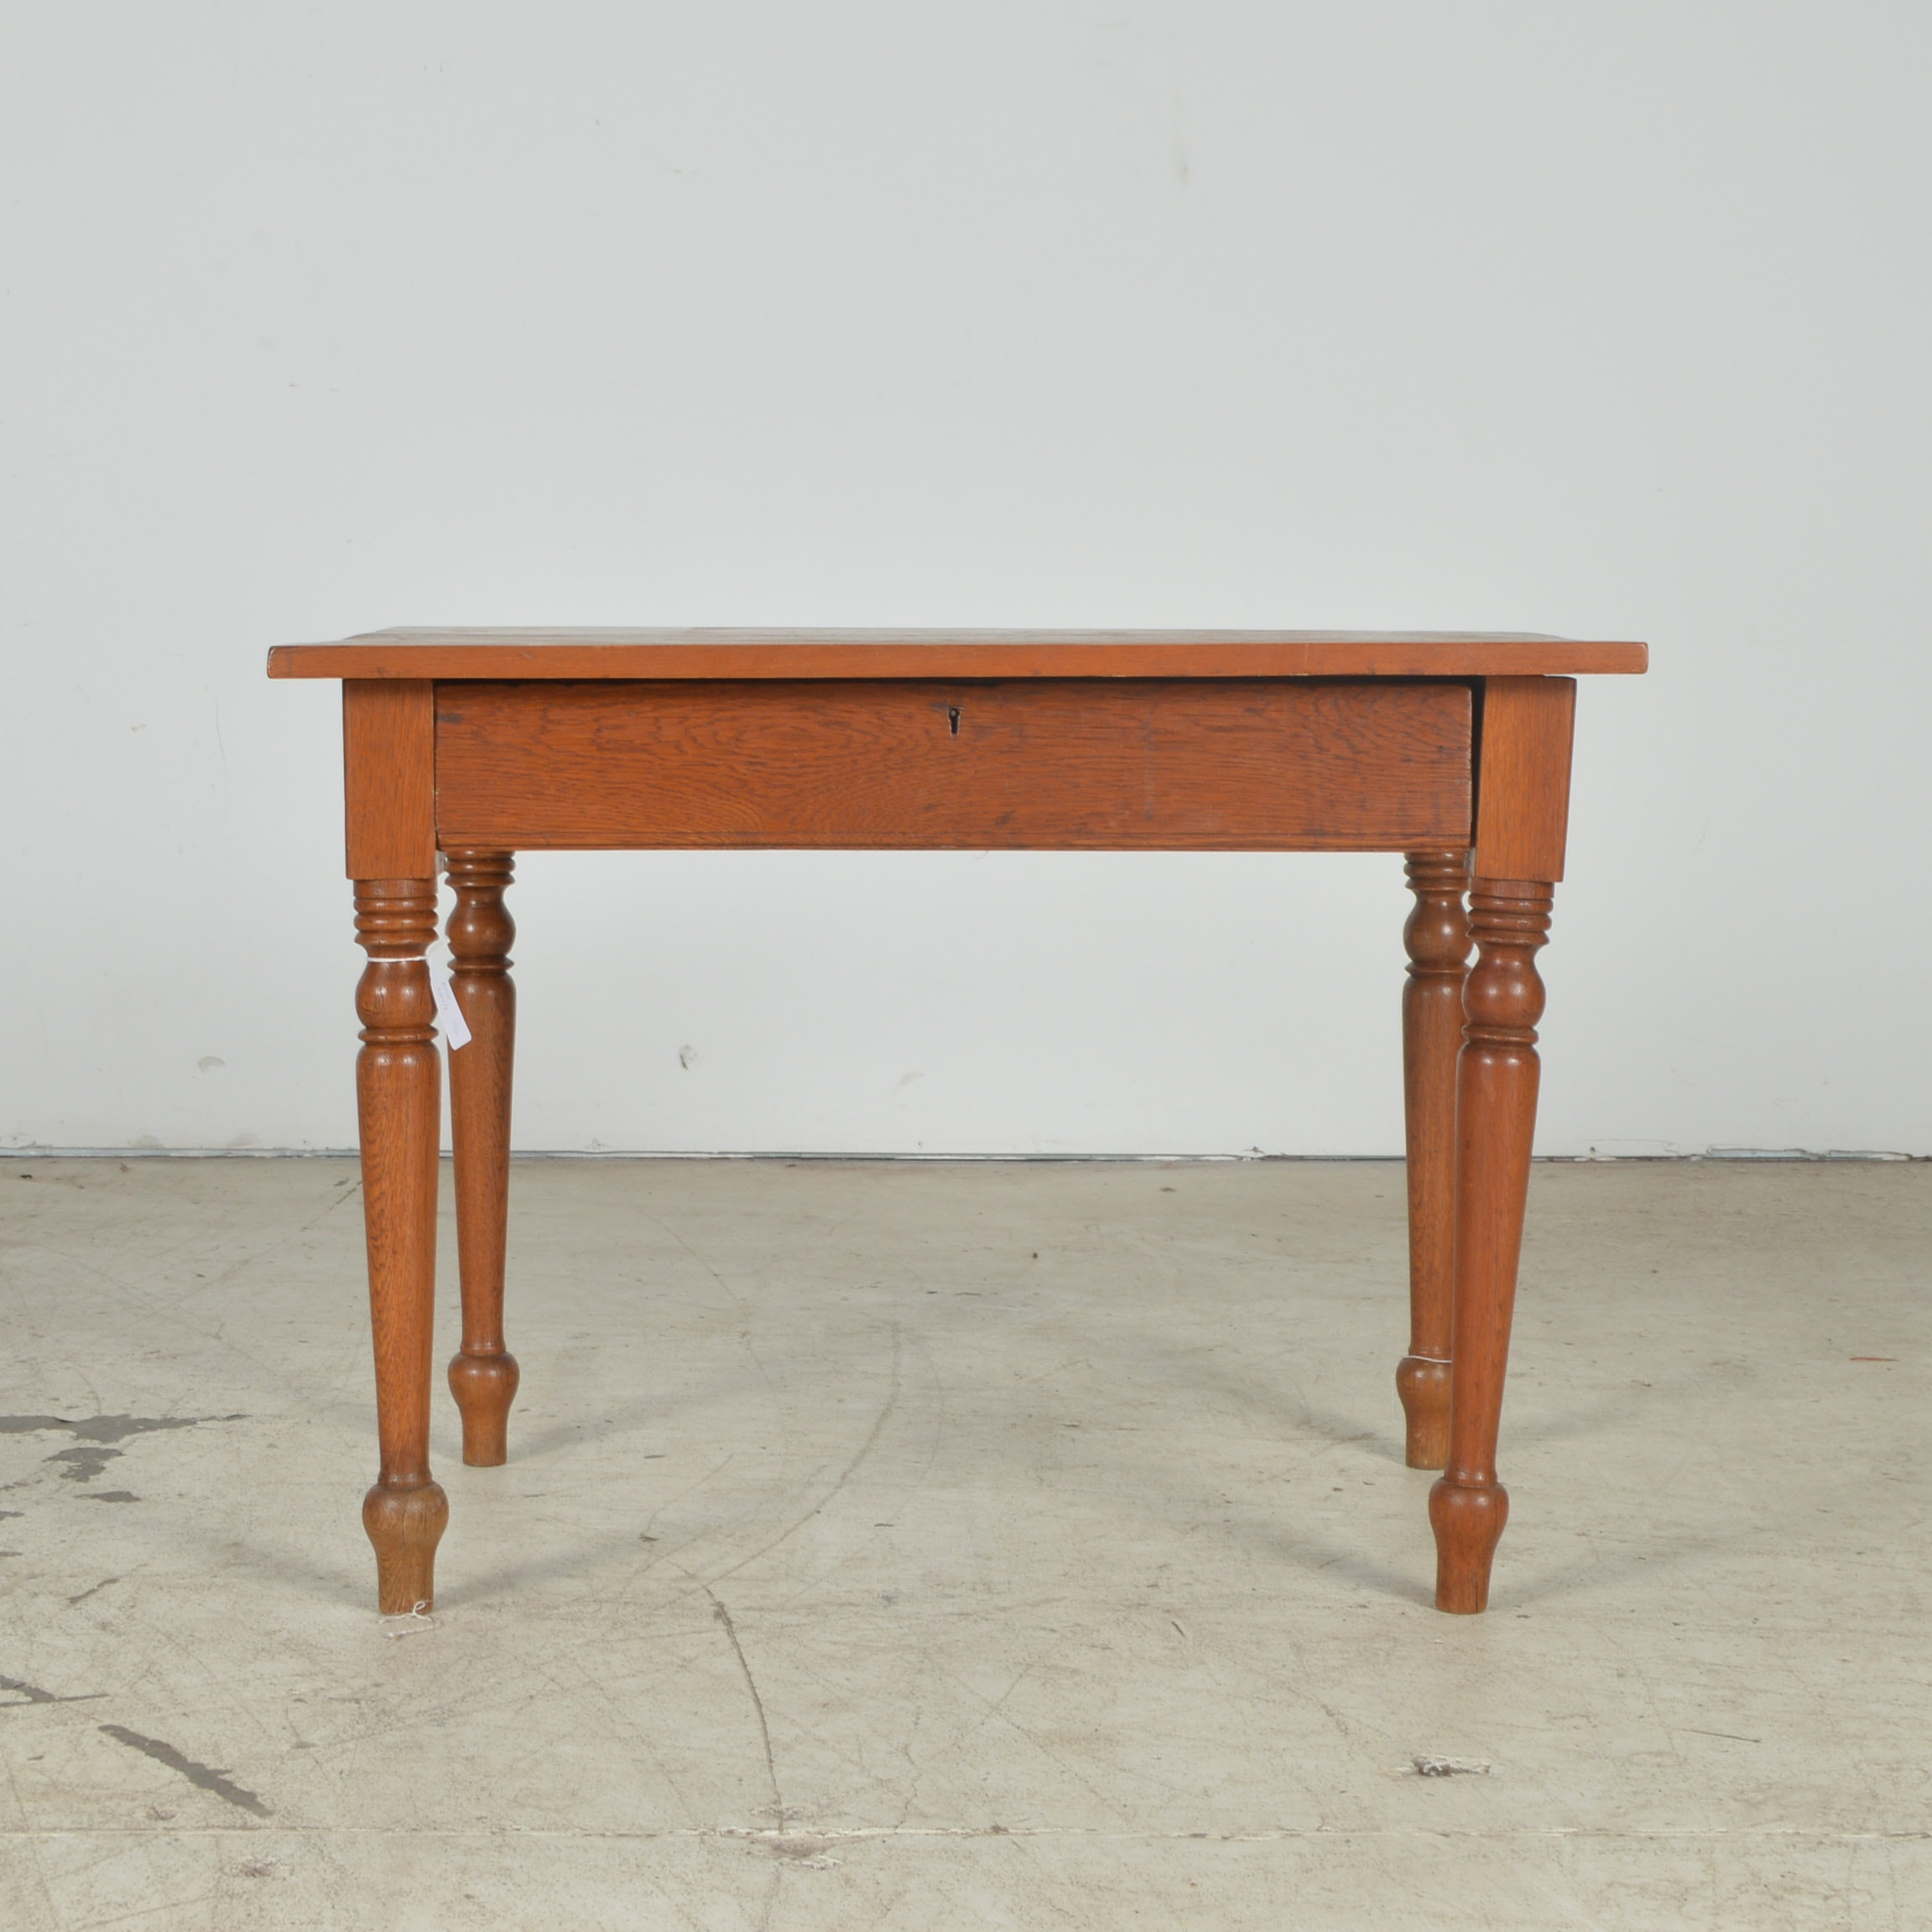 Antique Pine and Oak Kitchen Table with Turned Legs